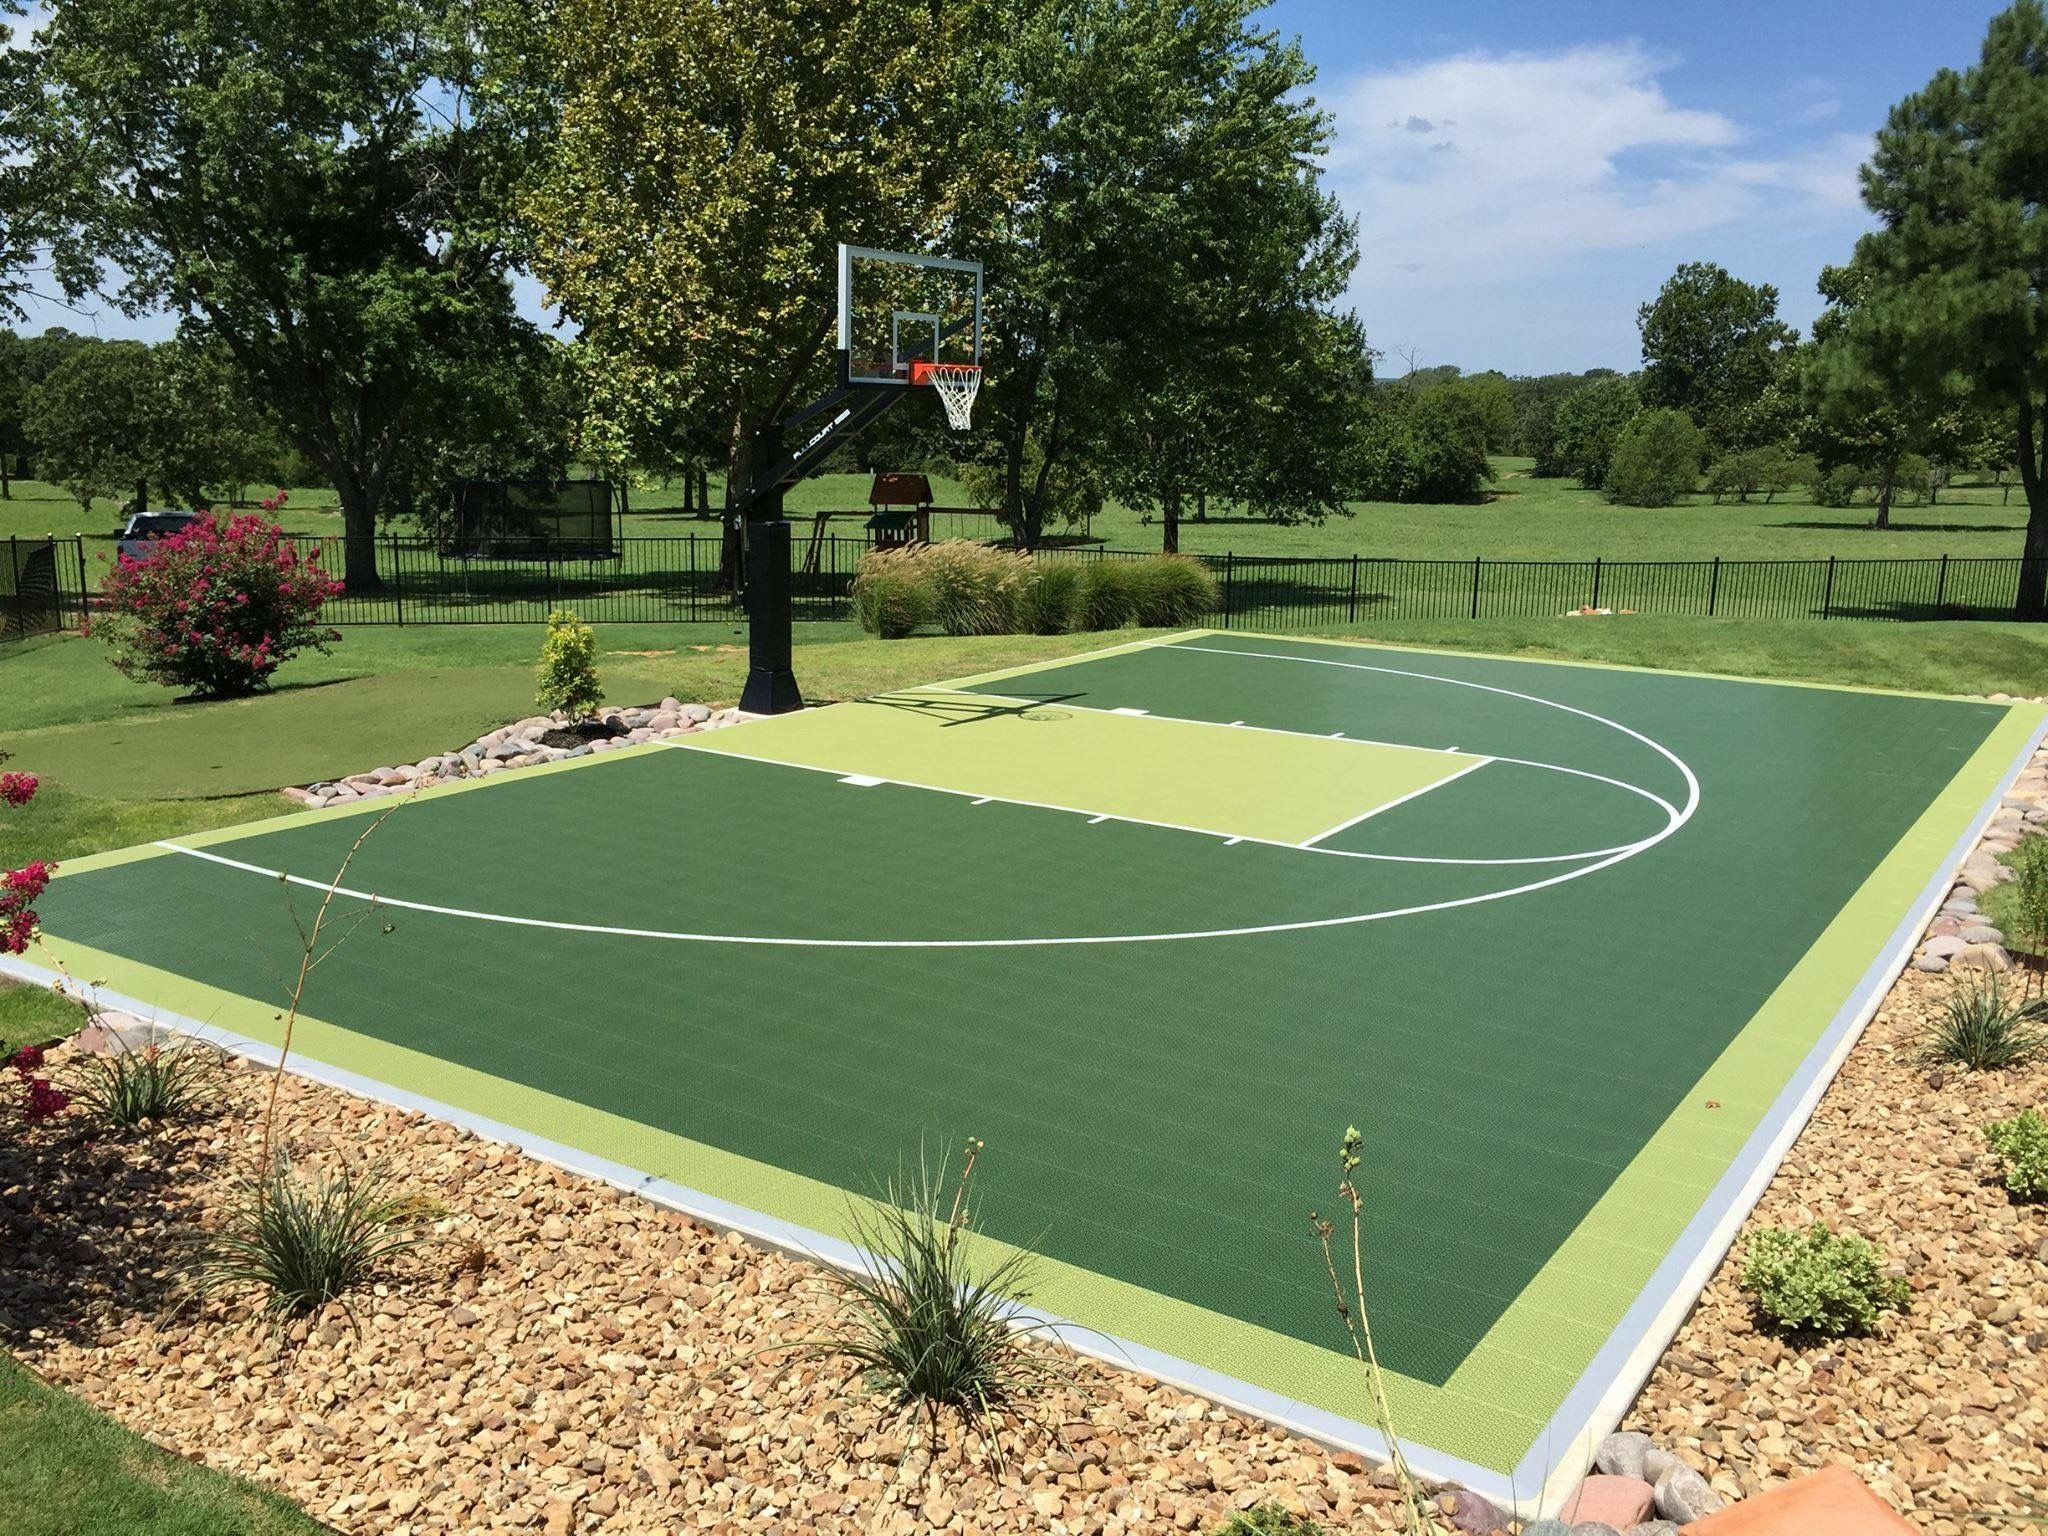 basketballcourt for your backyard snapsports for every court